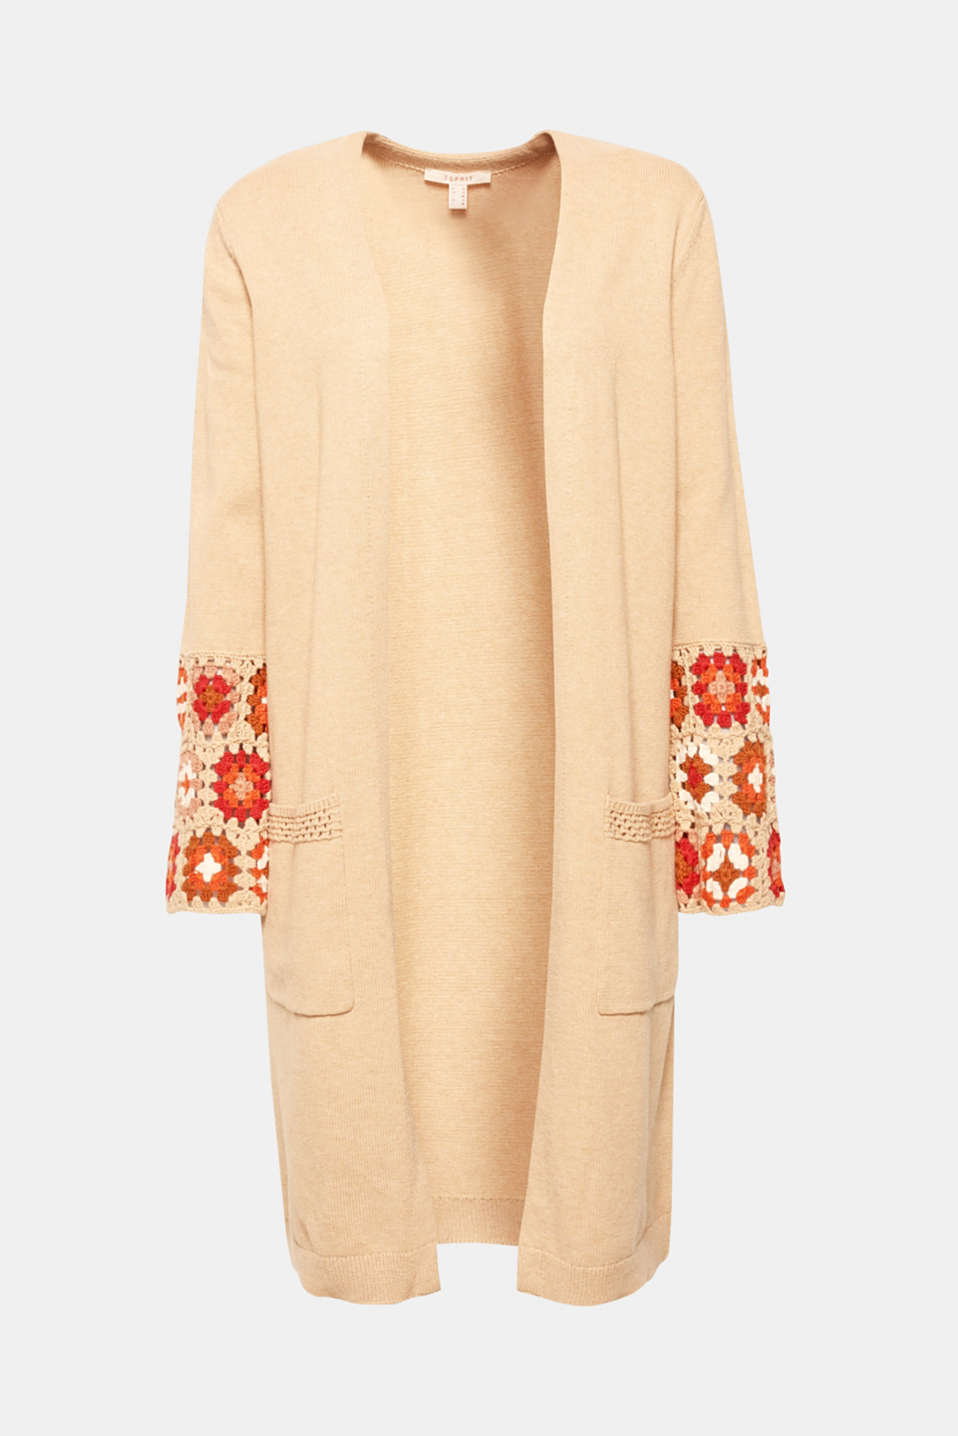 Long cardigan with crocheted details, 100% cotton, LIGHT BEIGE 5, detail image number 8